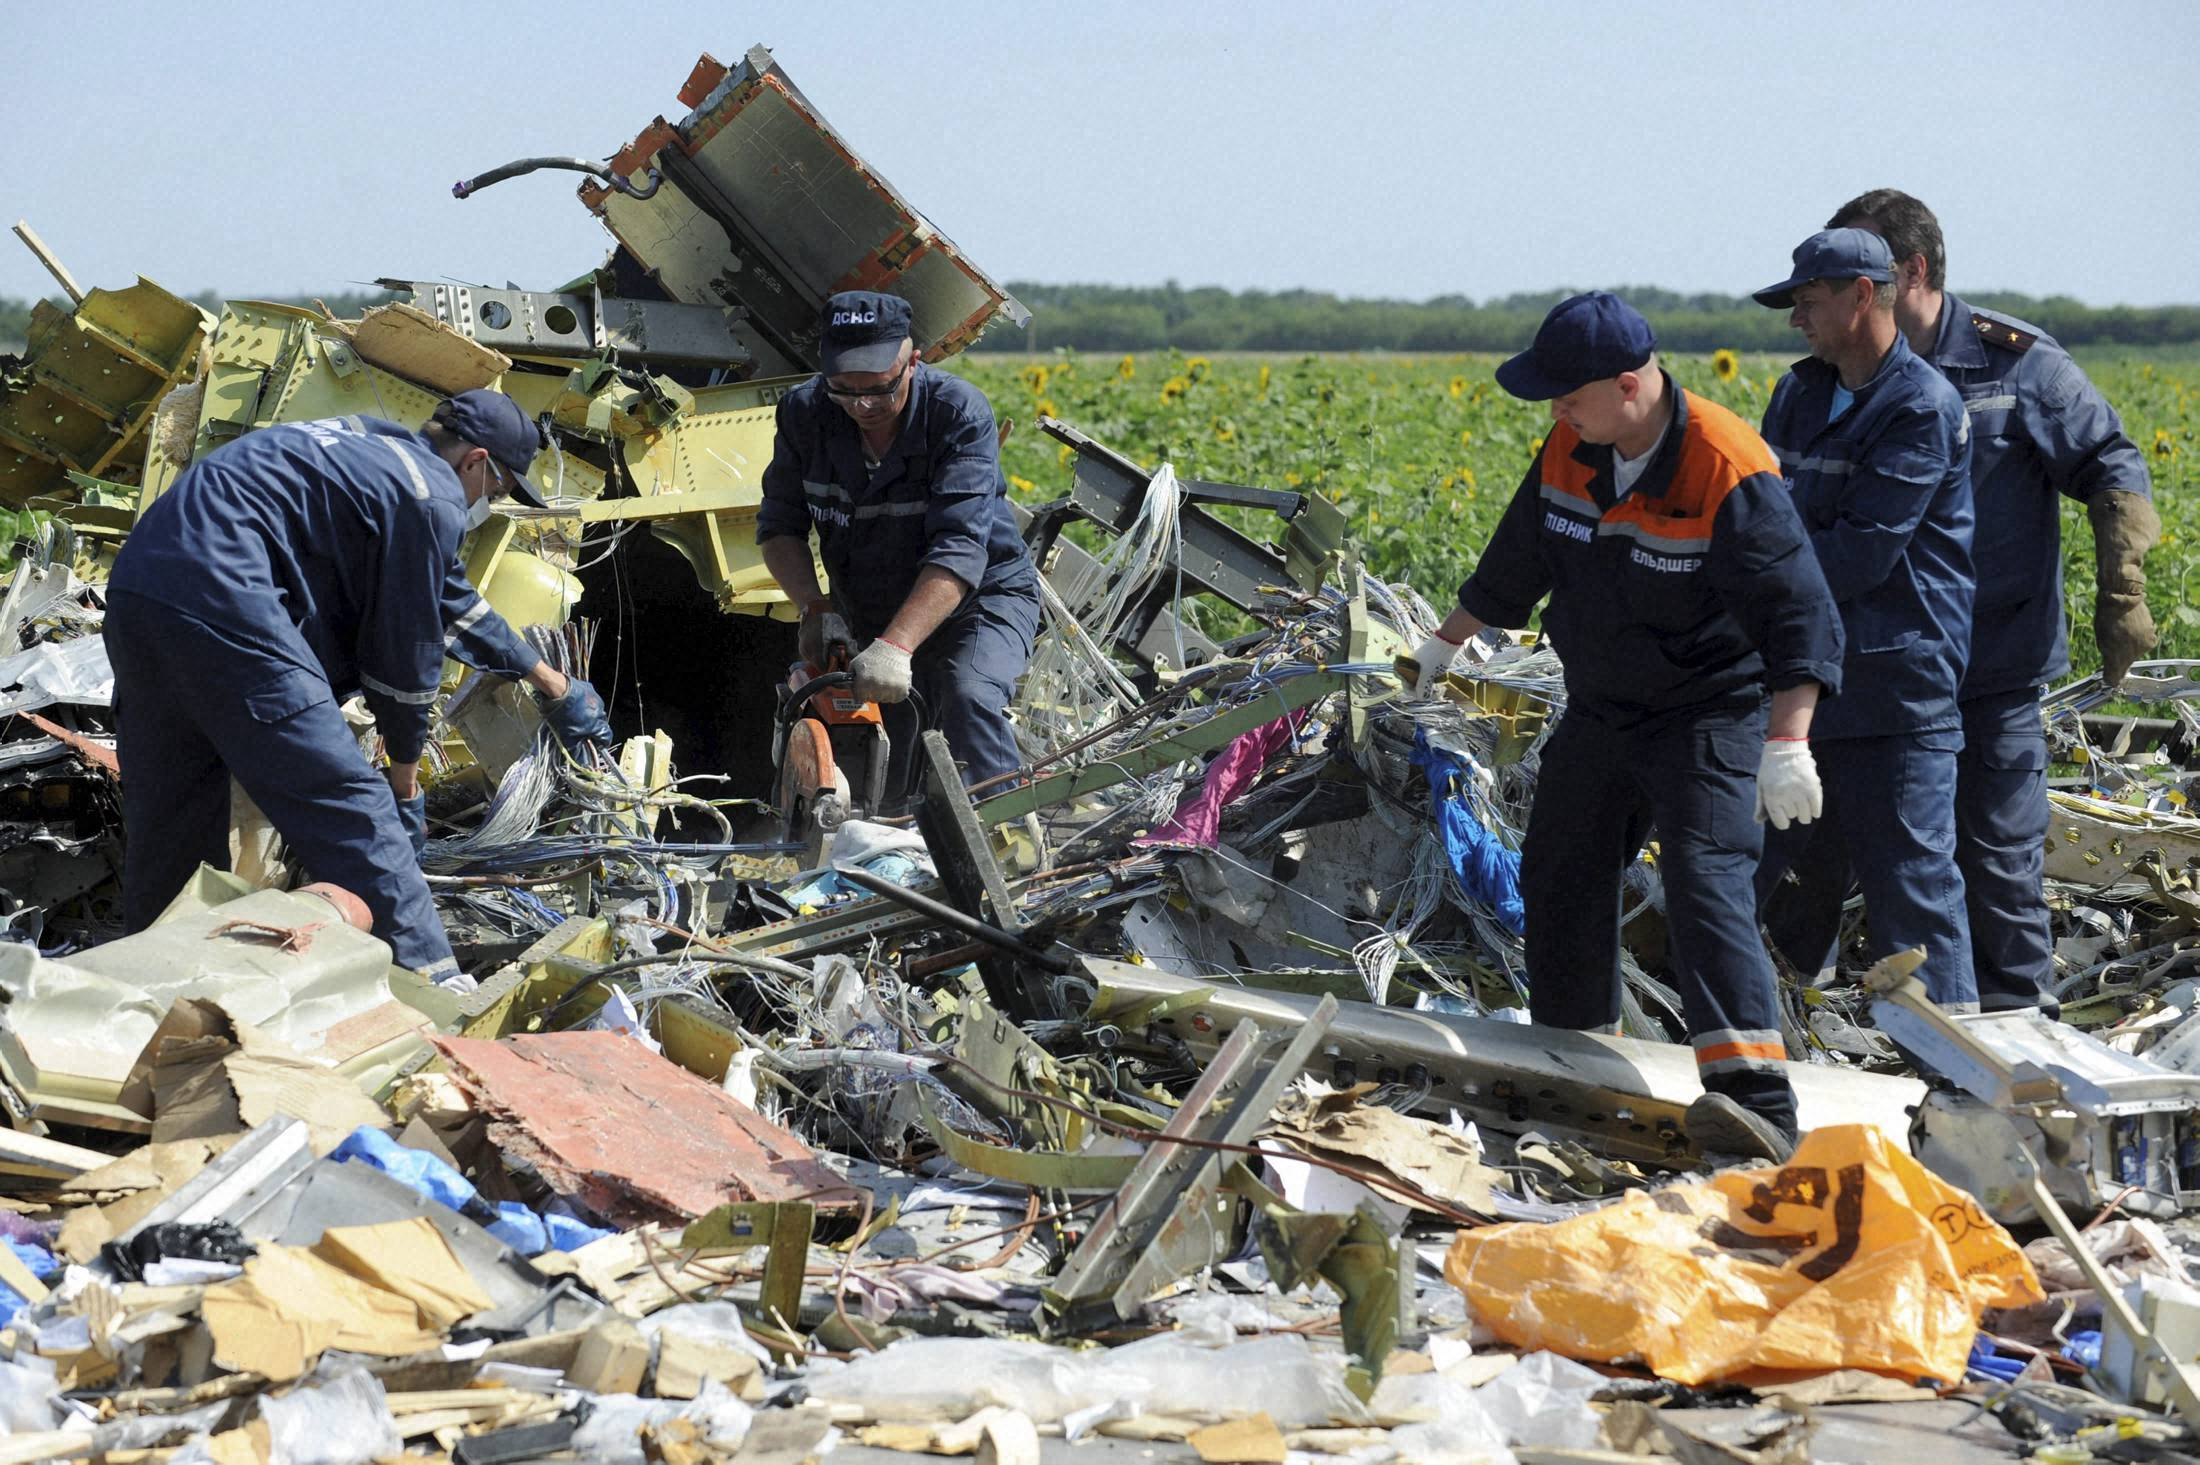 Human remains, aircraft parts, emergency workers, bodies, crash site, Malaysia, Airlines Flight, Hrabove, eastern Ukraine, pro-Russia, rebels,Malaysia, Airlines Flight, unfettered, independent, investigators